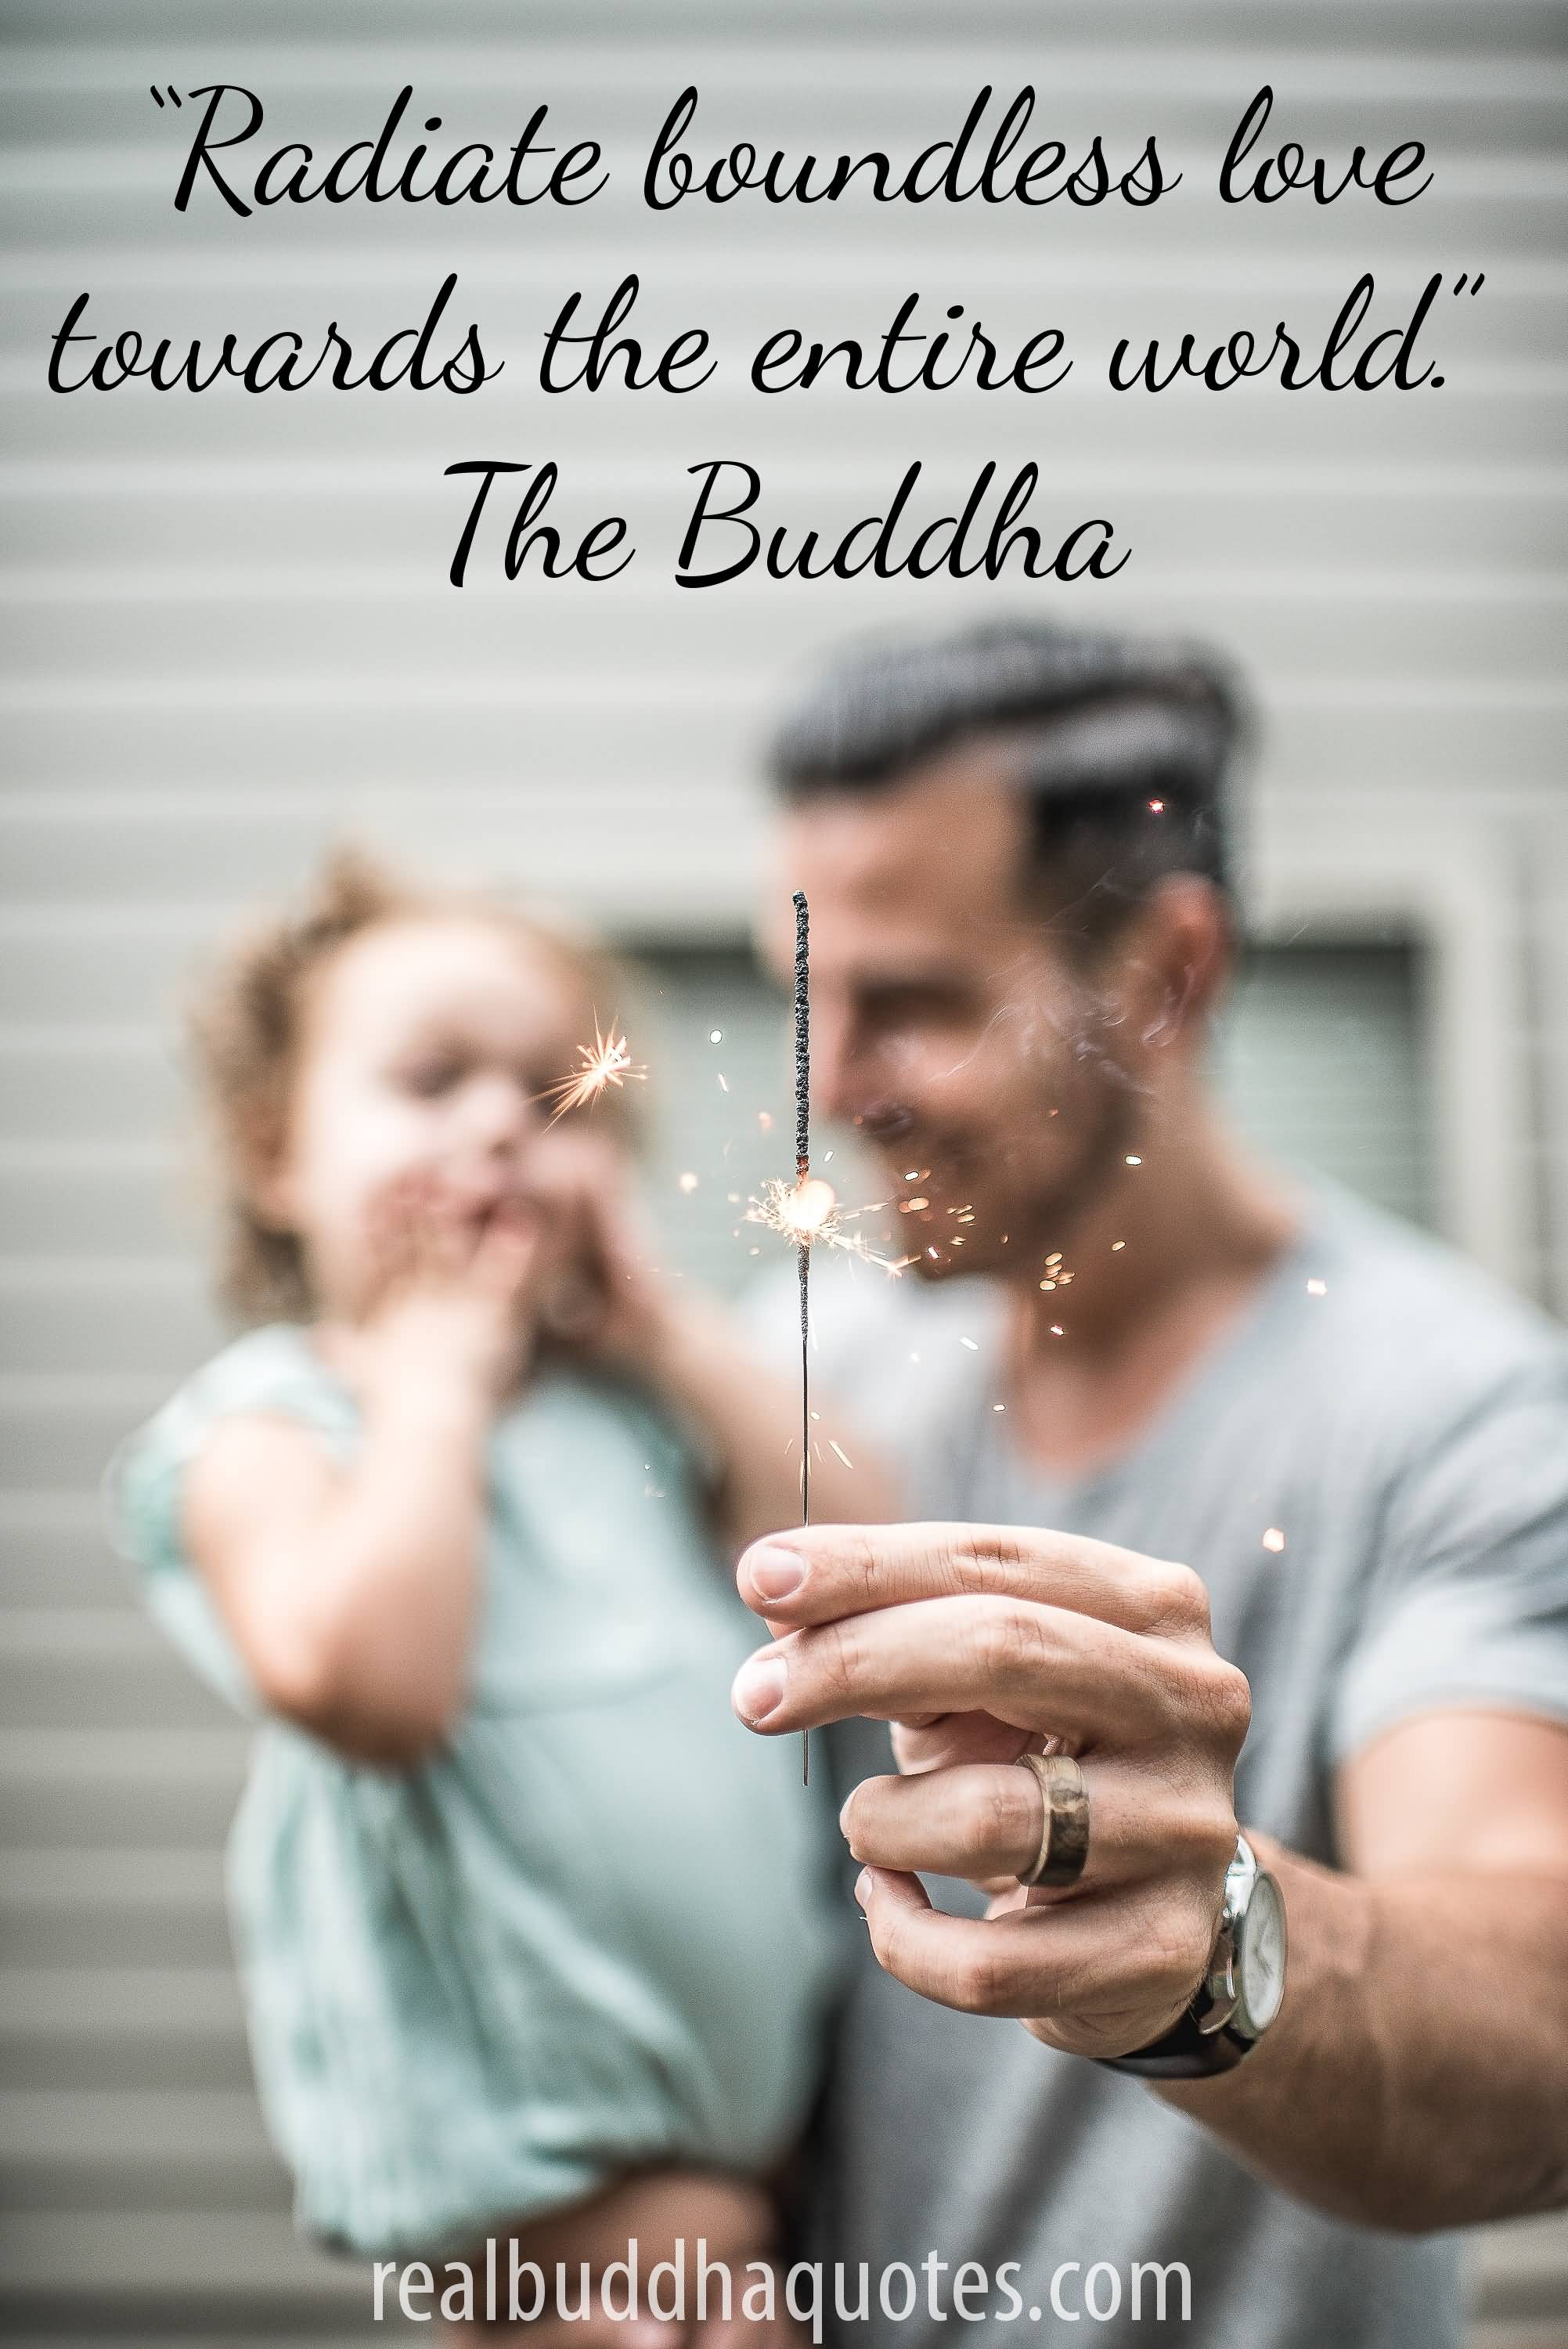 Buddha Quotes About Love 11